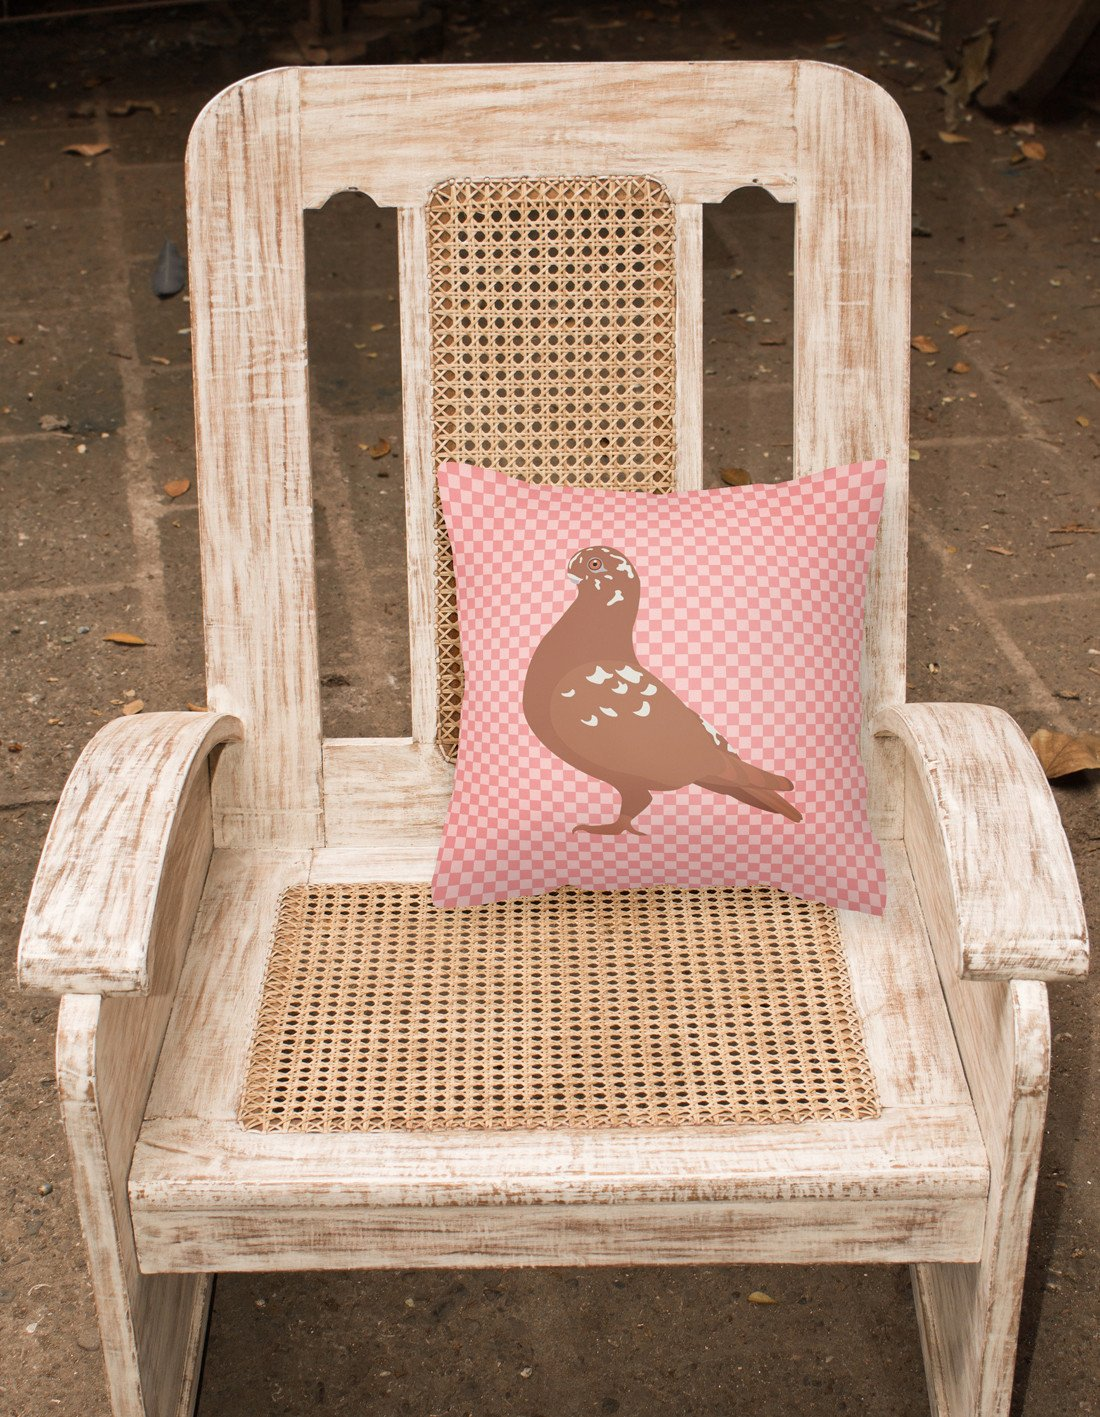 African Owl Pigeon Pink Check Fabric Decorative Pillow BB7953PW1818 by Caroline's Treasures